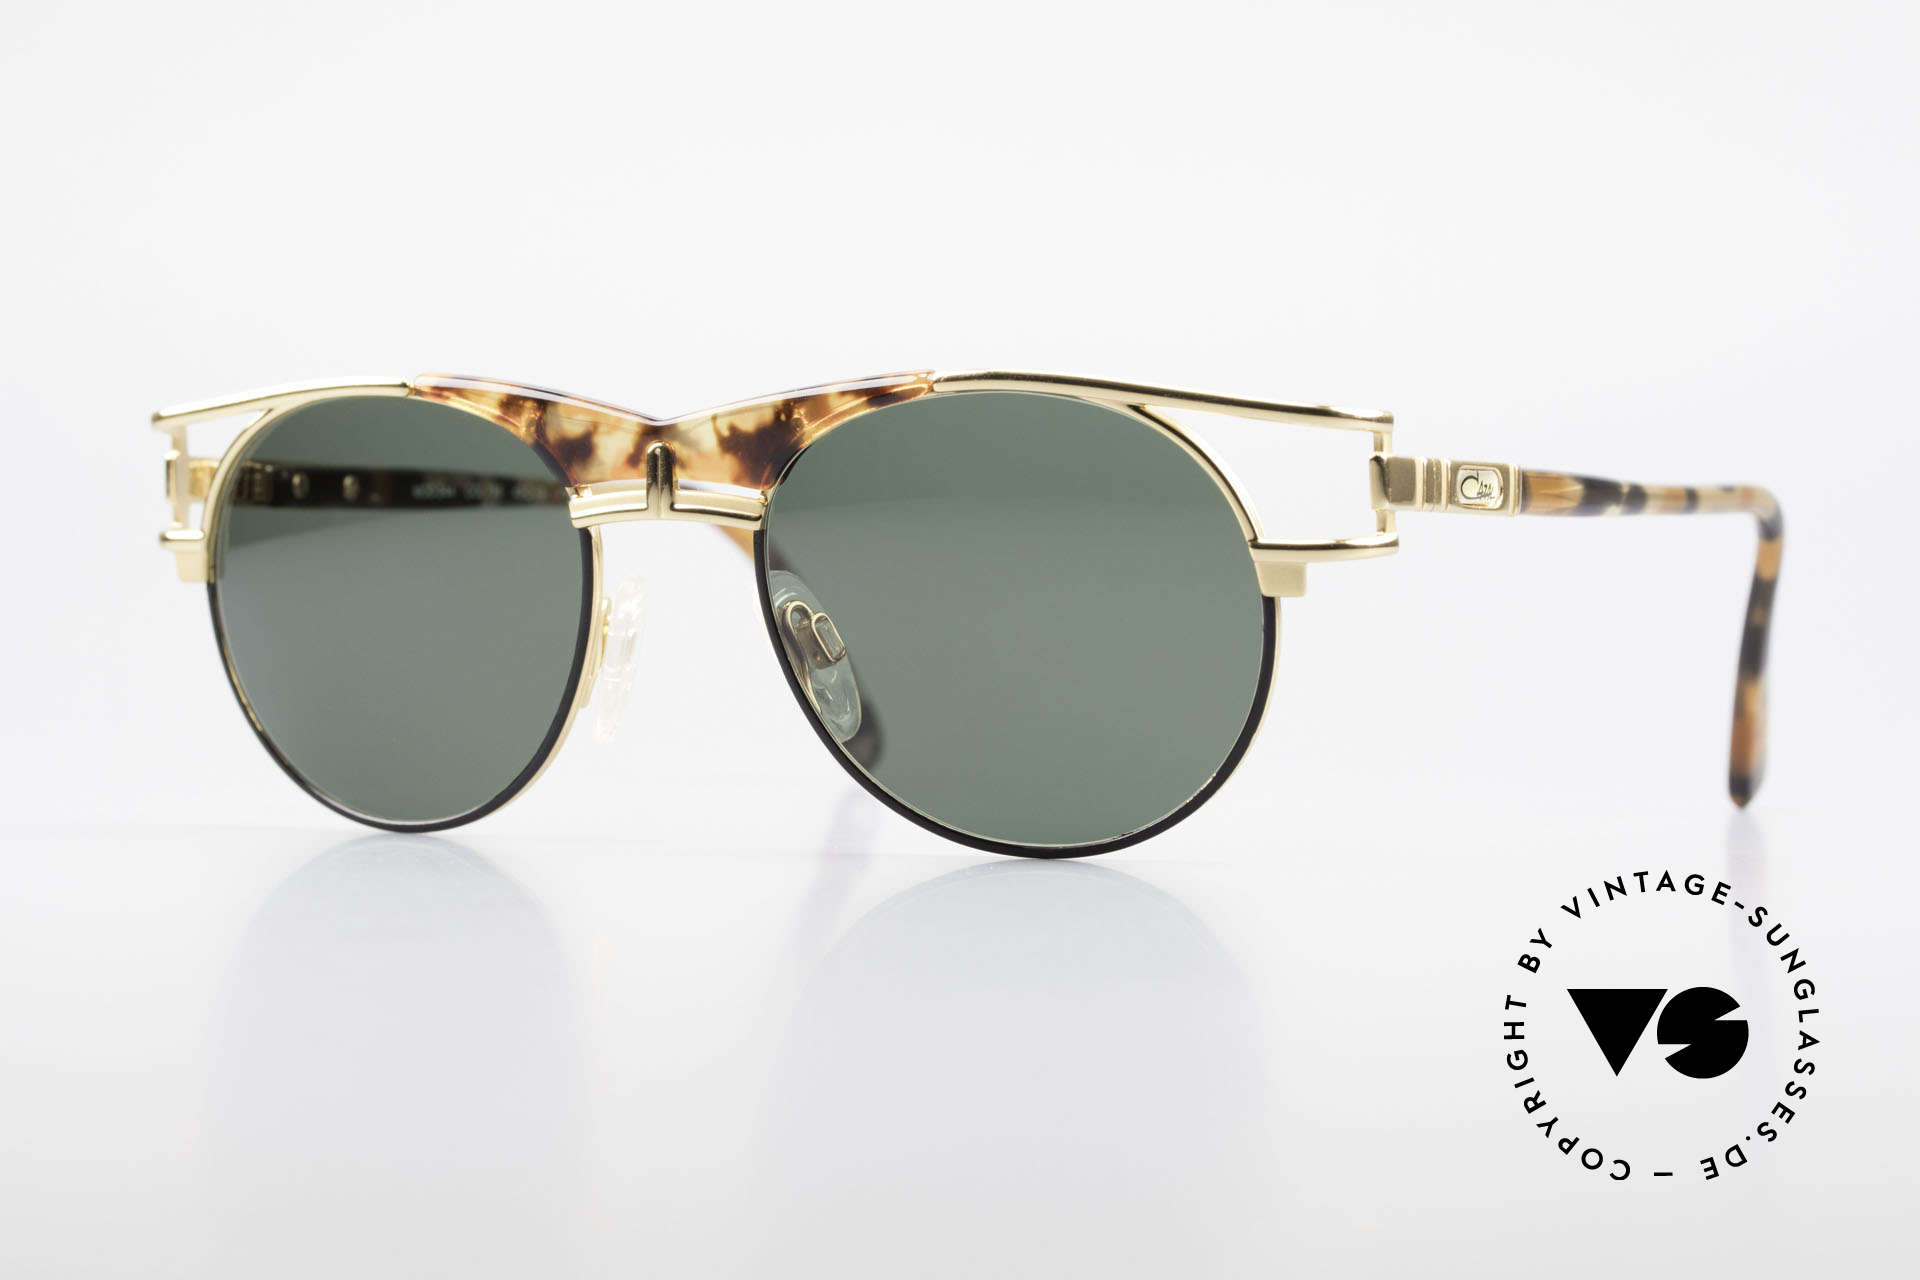 Cazal 244 Iconic 90's Vintage Sunglasses, elegant Cazal designer shades of the early 90's, Made for Men and Women